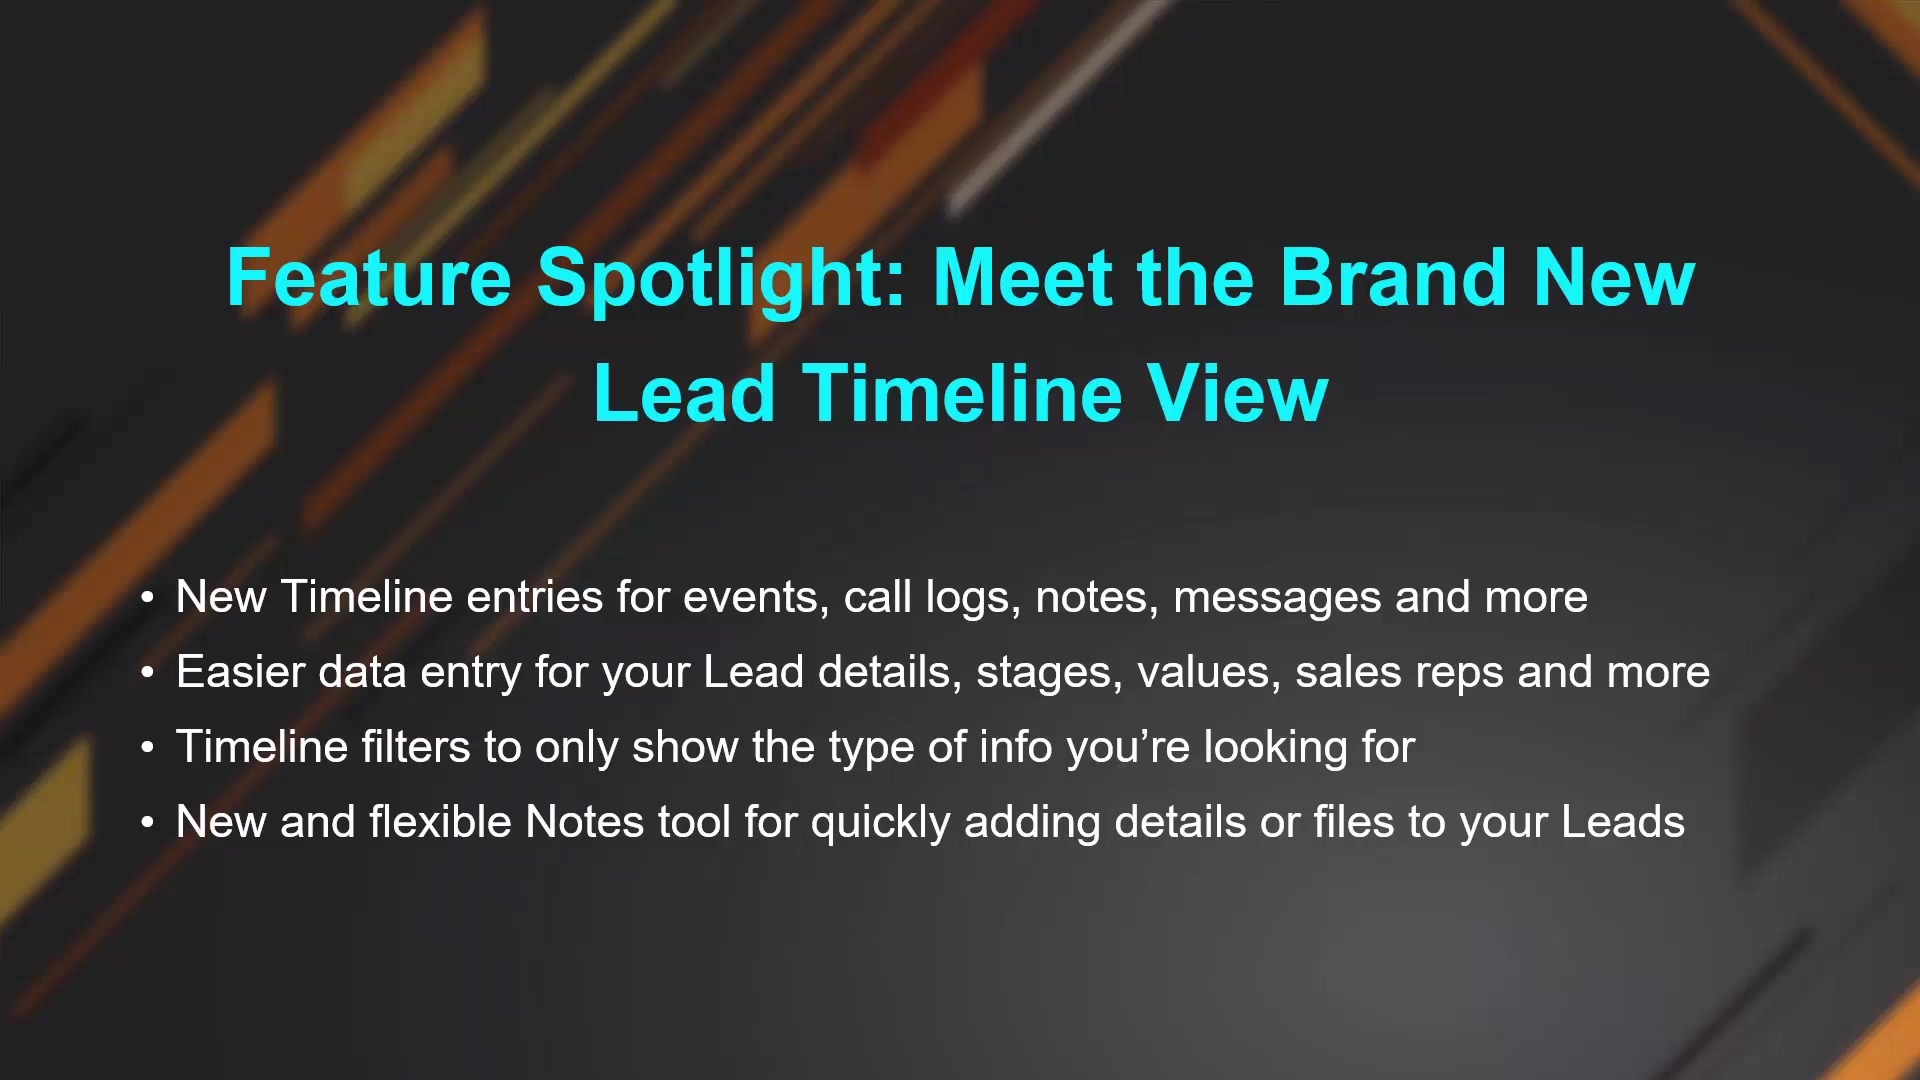 Feature Spotlight - Meet the Brand New Lead Timeline View_1